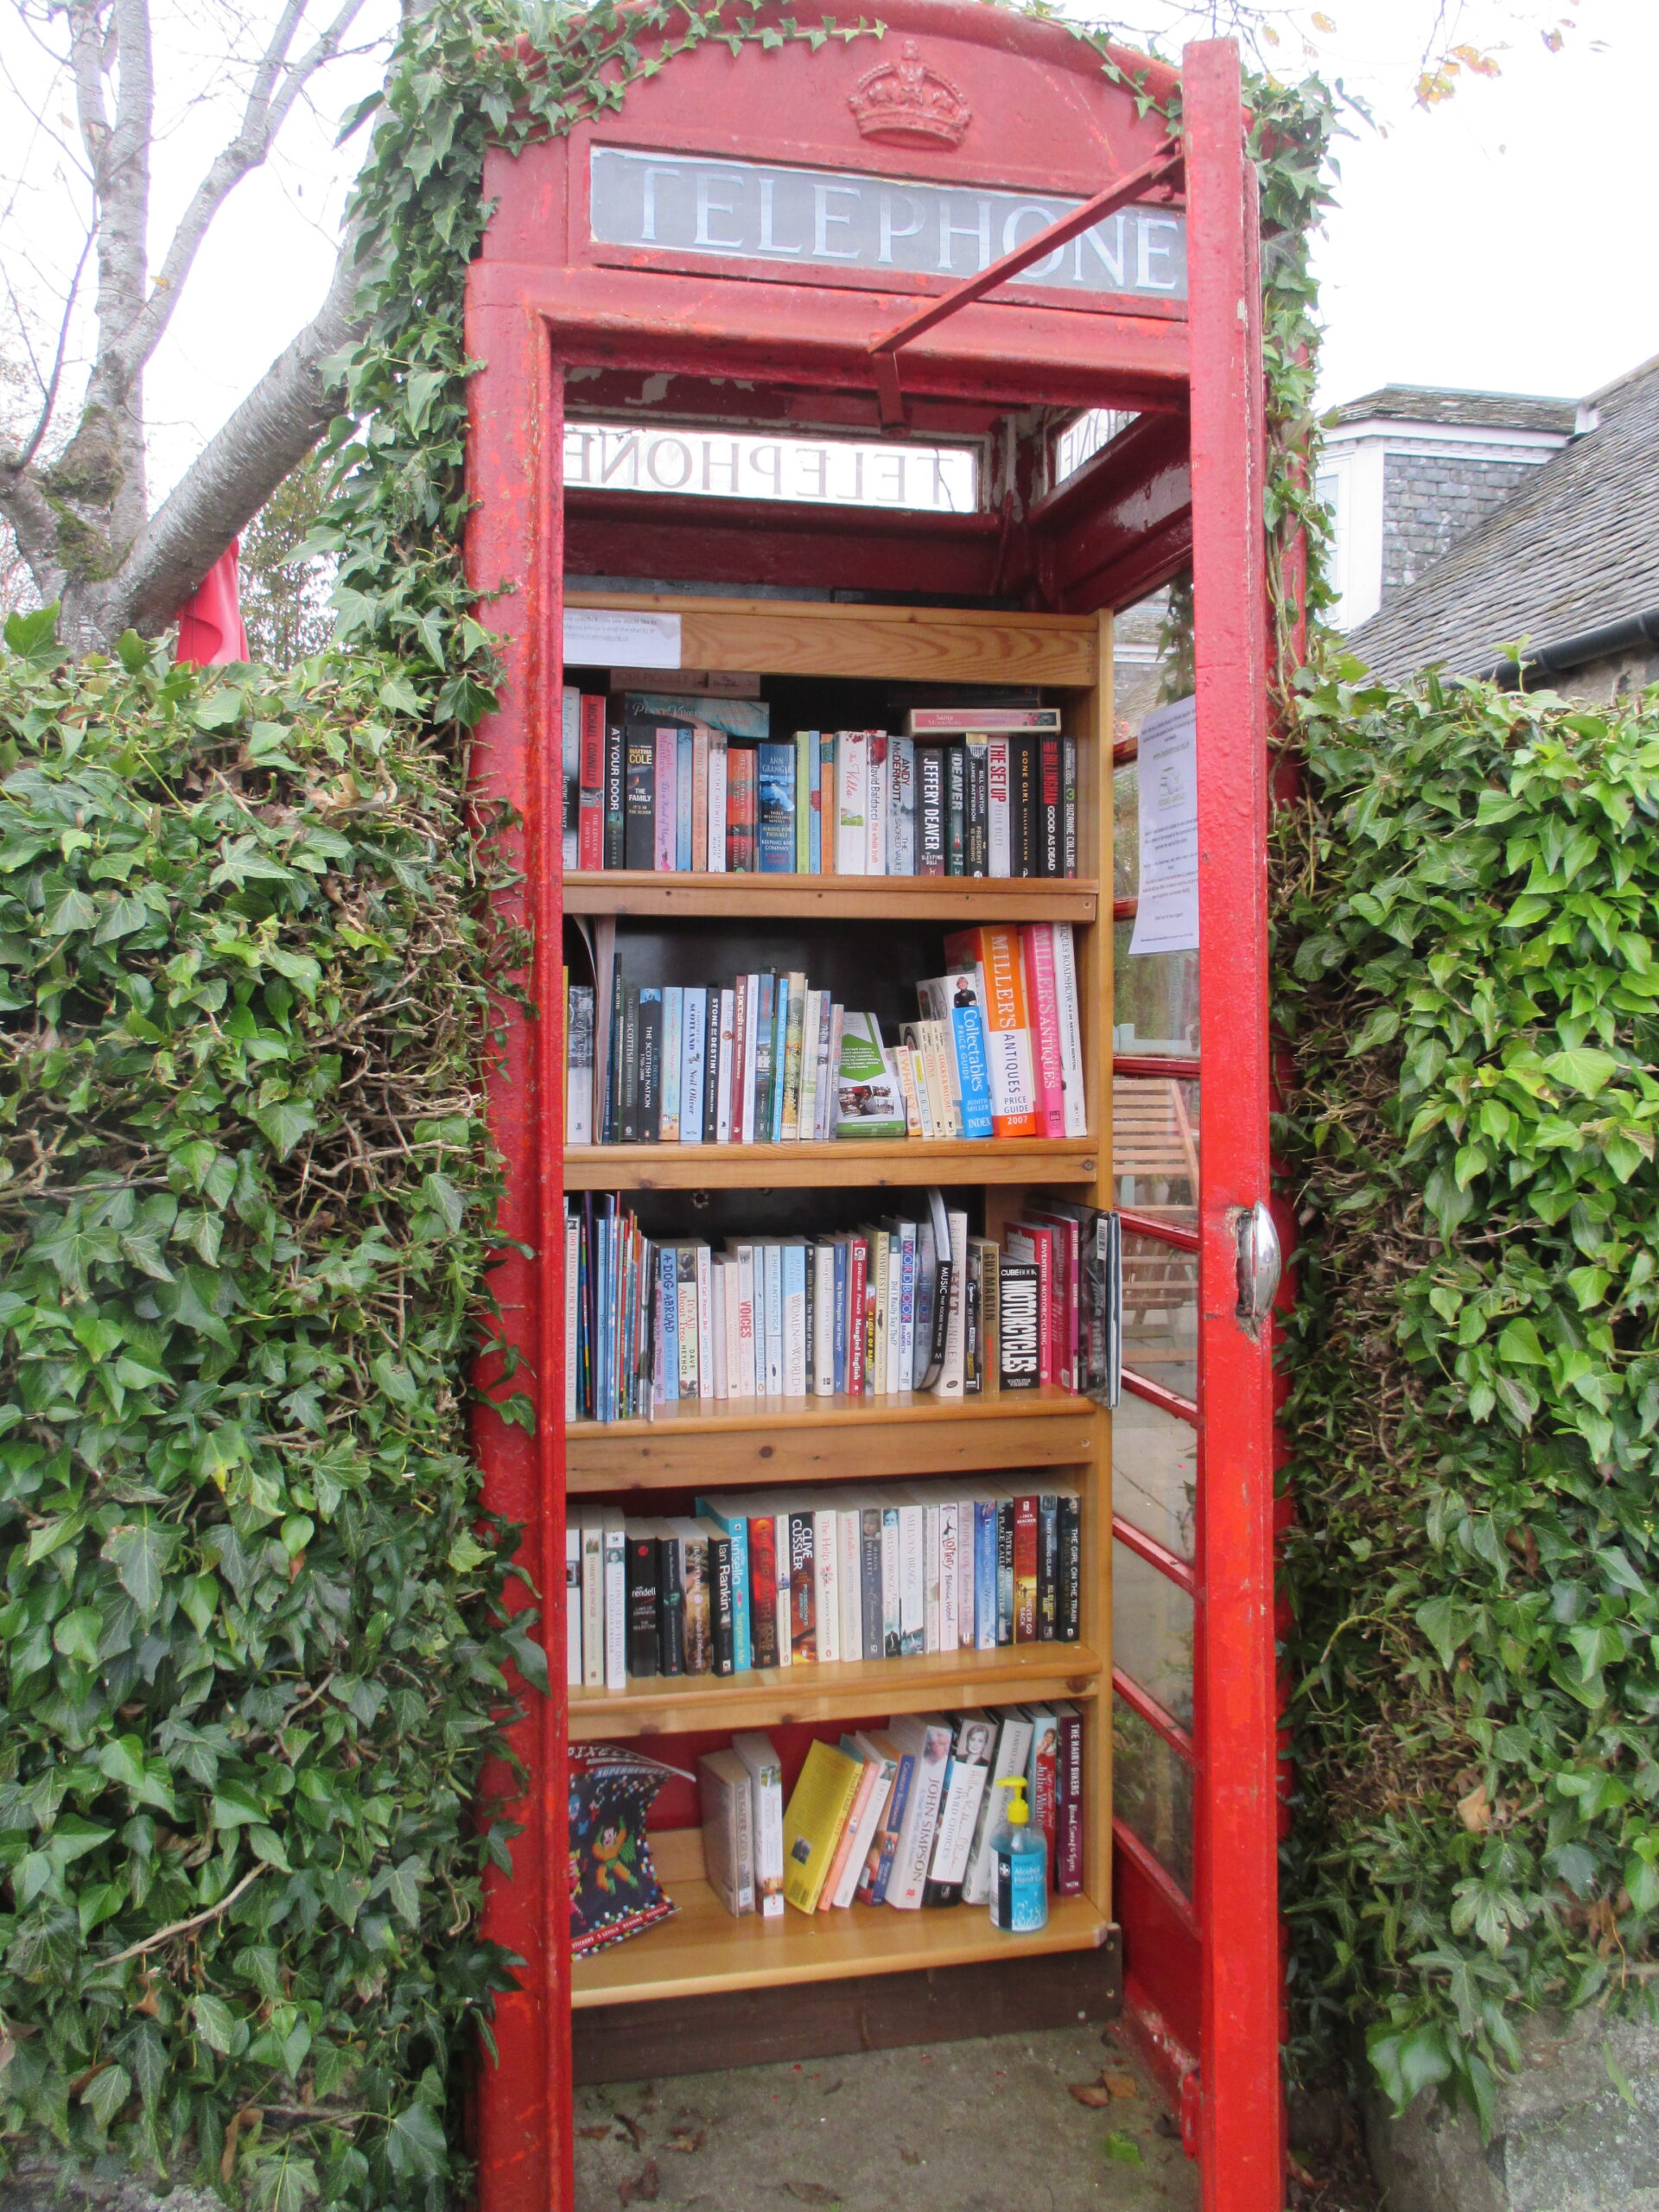 Mini Library in phone box